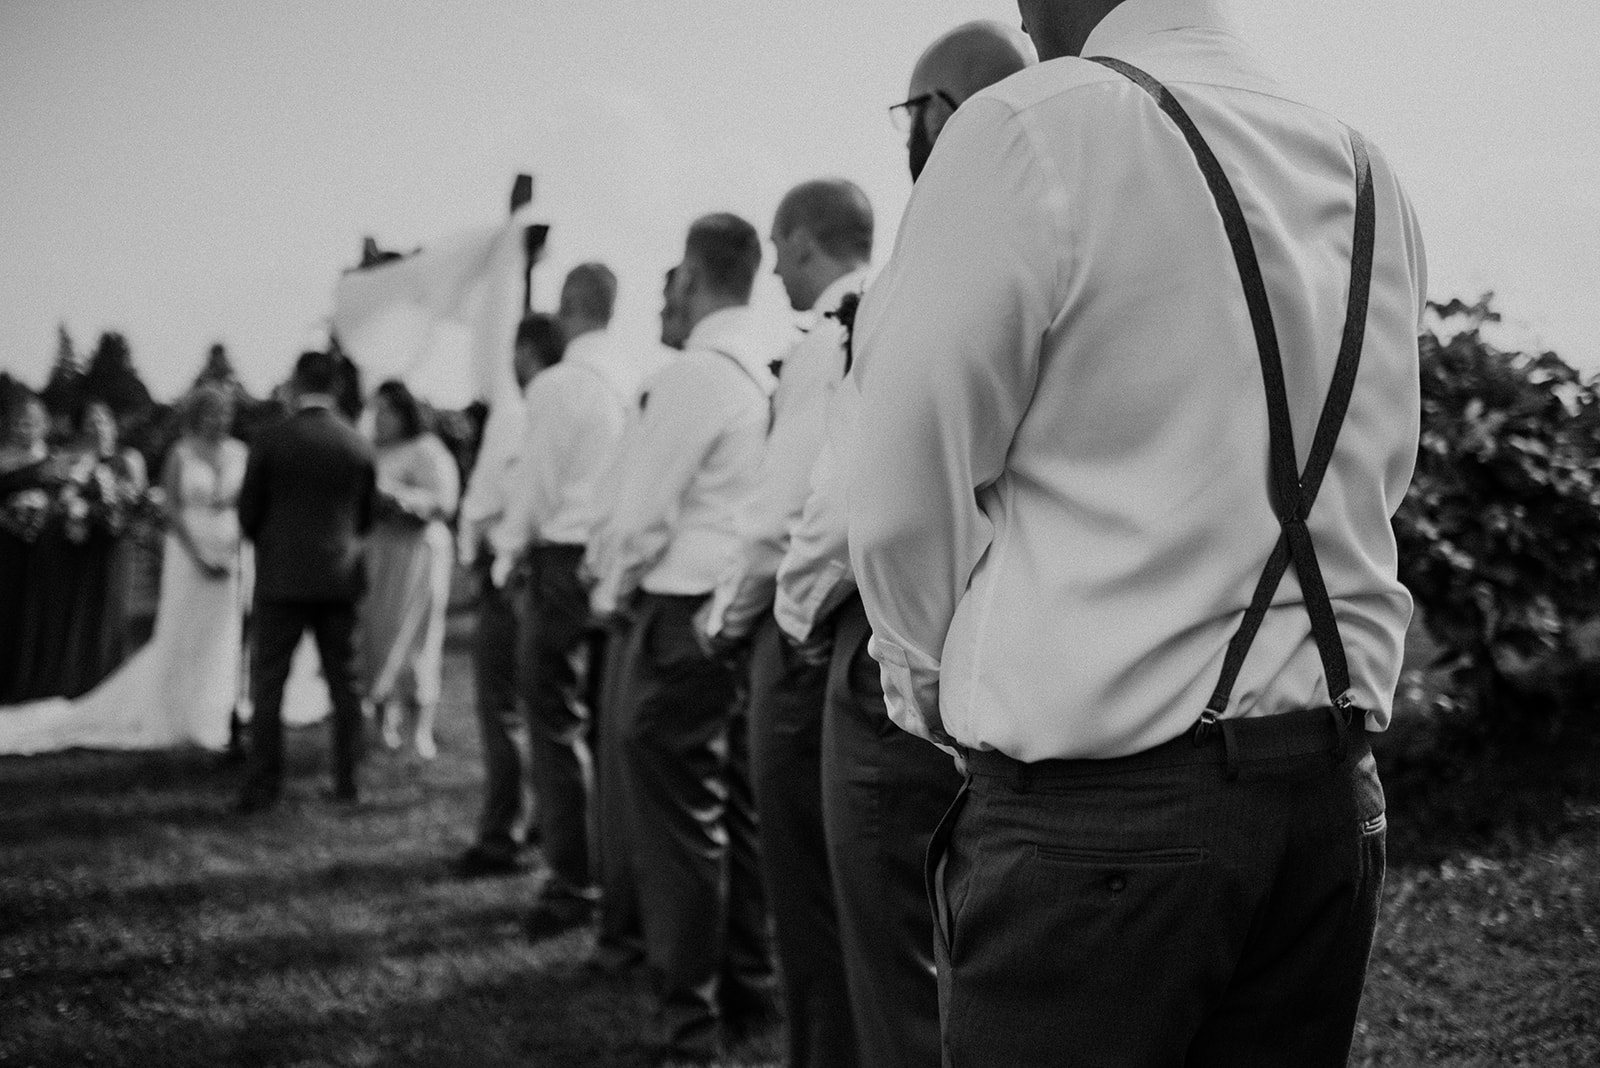 overthevineswisconsinwedding_0640.jpg